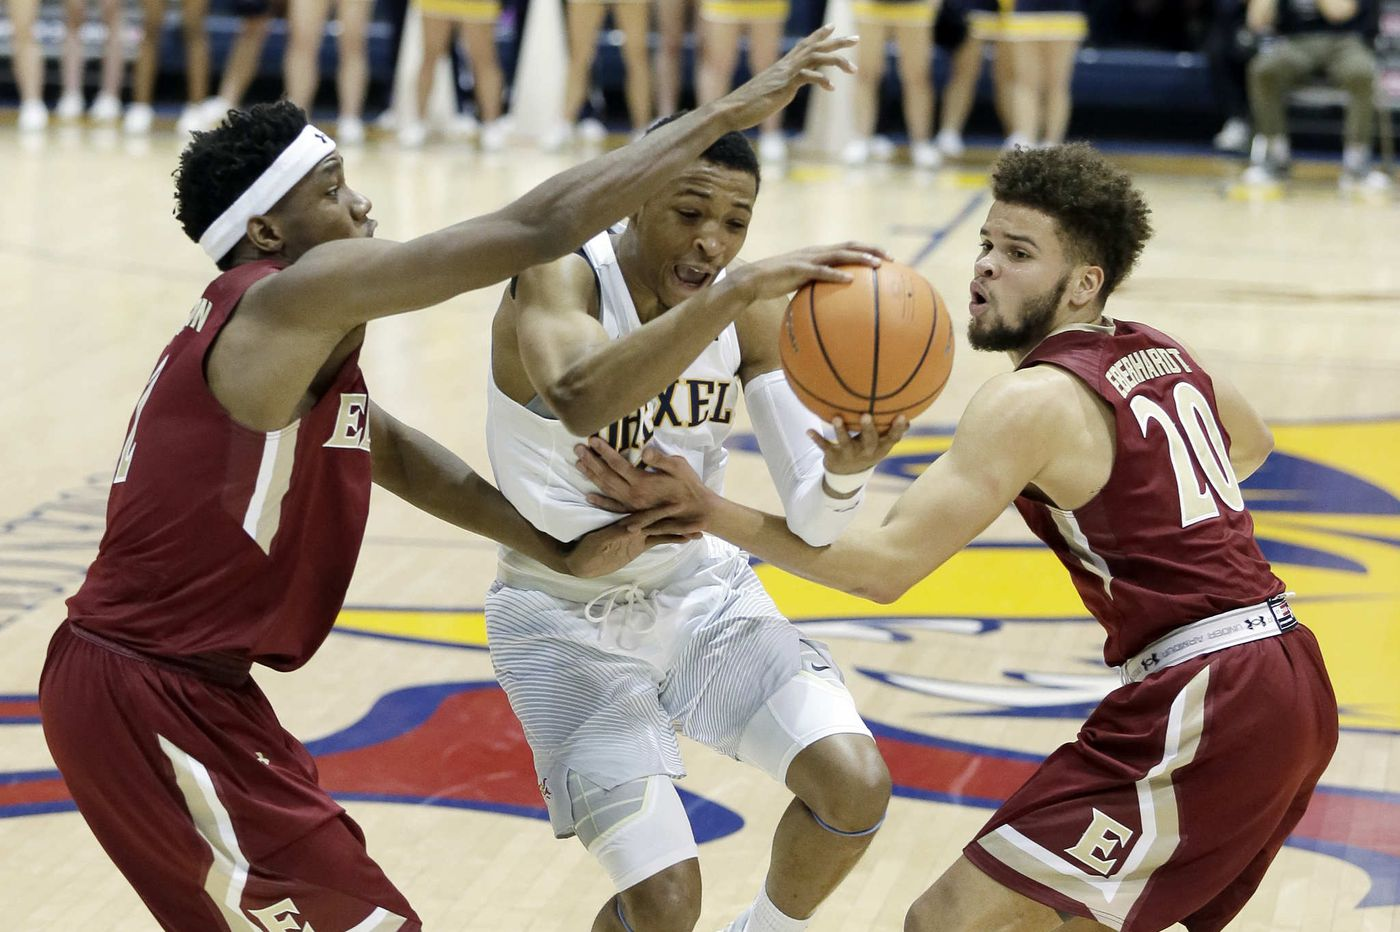 Drexel's three-game win streak snapped by Bowling Green